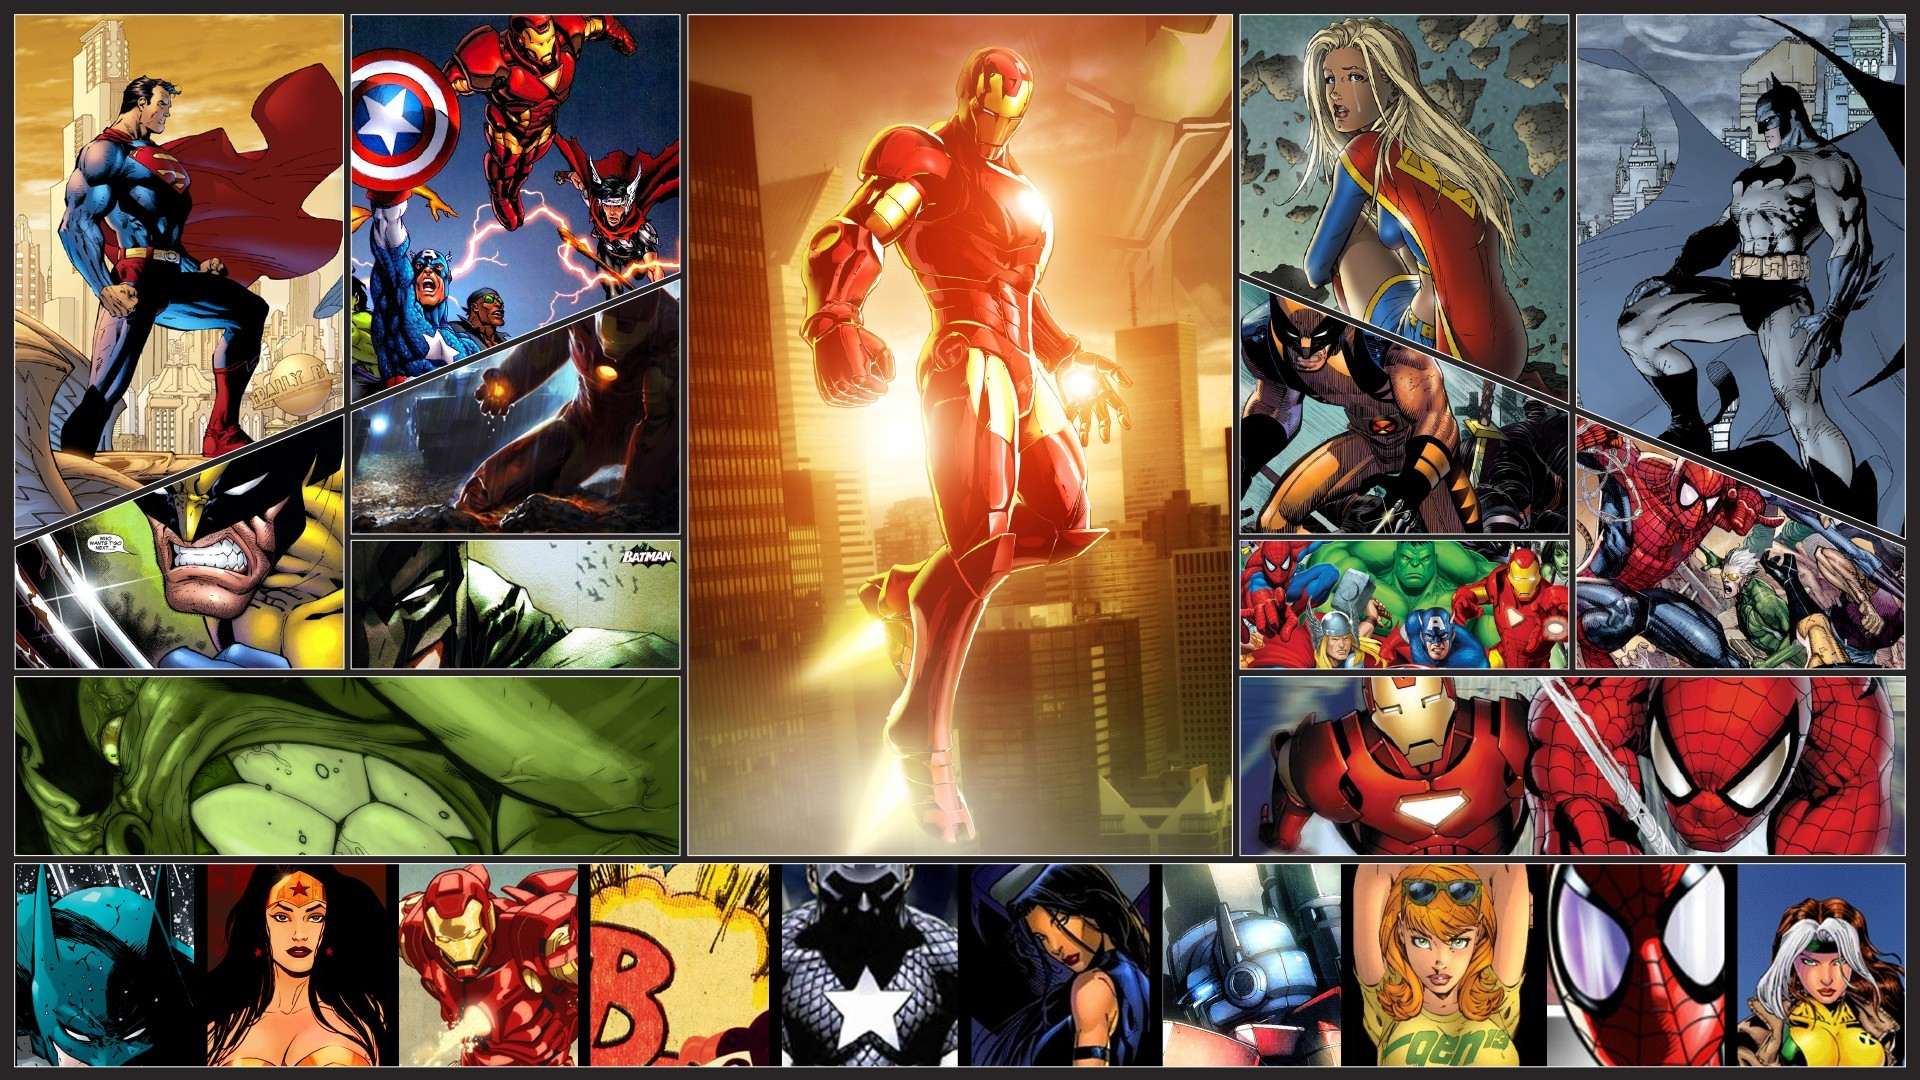 General 1920x1080 Wolverine Spider-Man Captain America Thor Iron Man Marvel Comics Superman Supergirl Batman Wonder Woman Rogue (character) Hulk collage